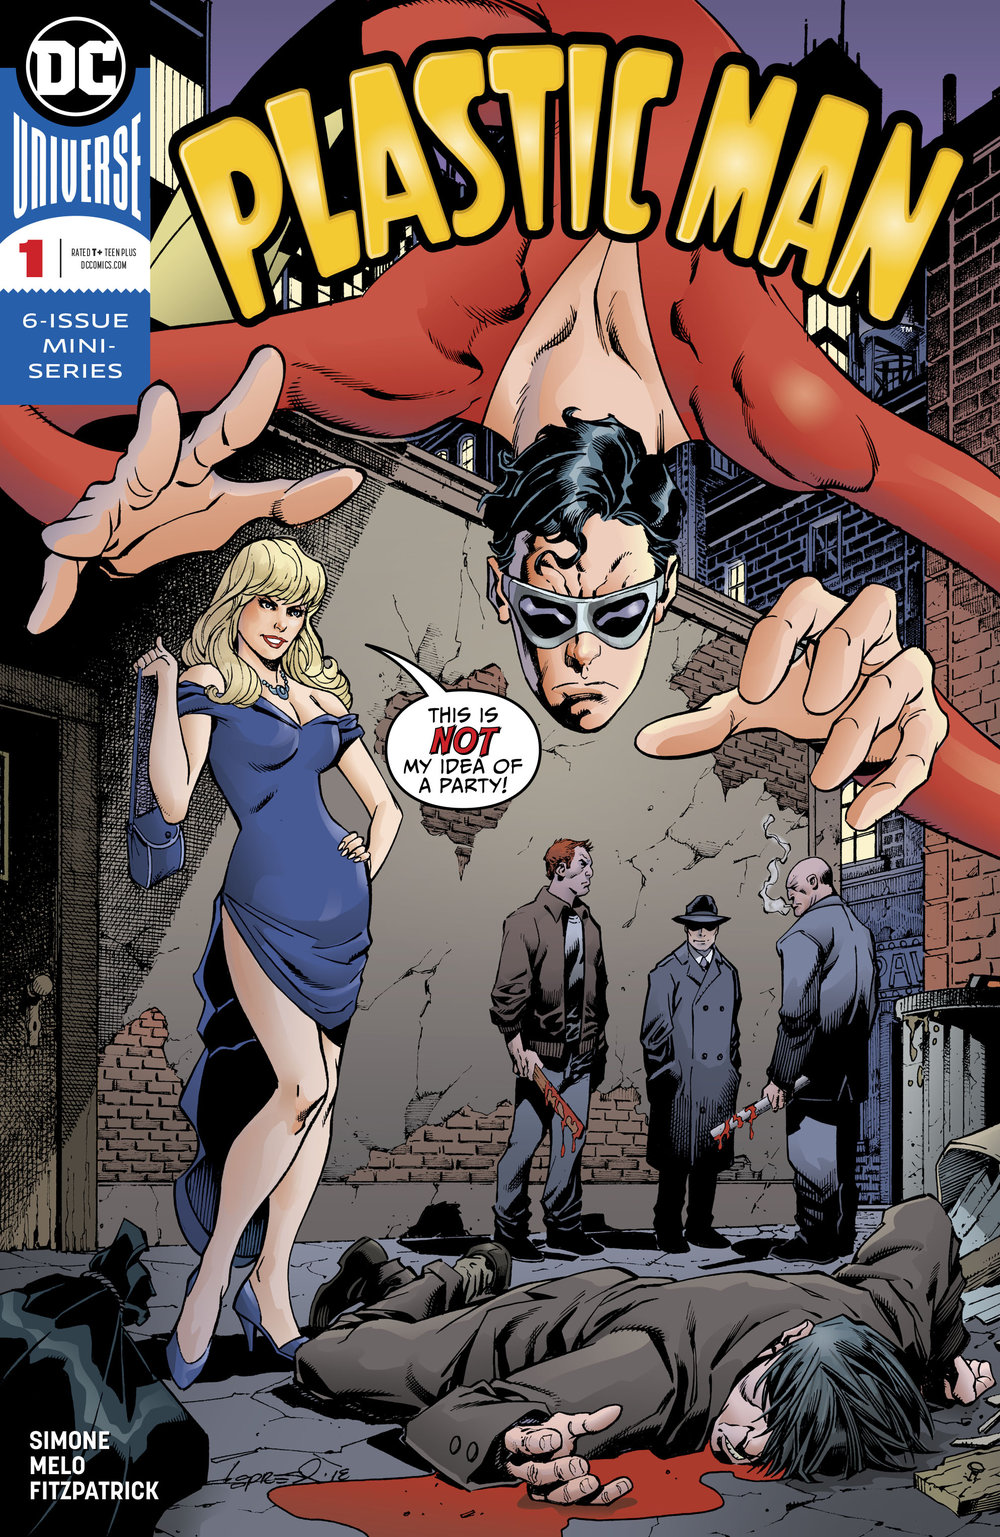 Plastic Man #1 cover by Aaron Lopresti.